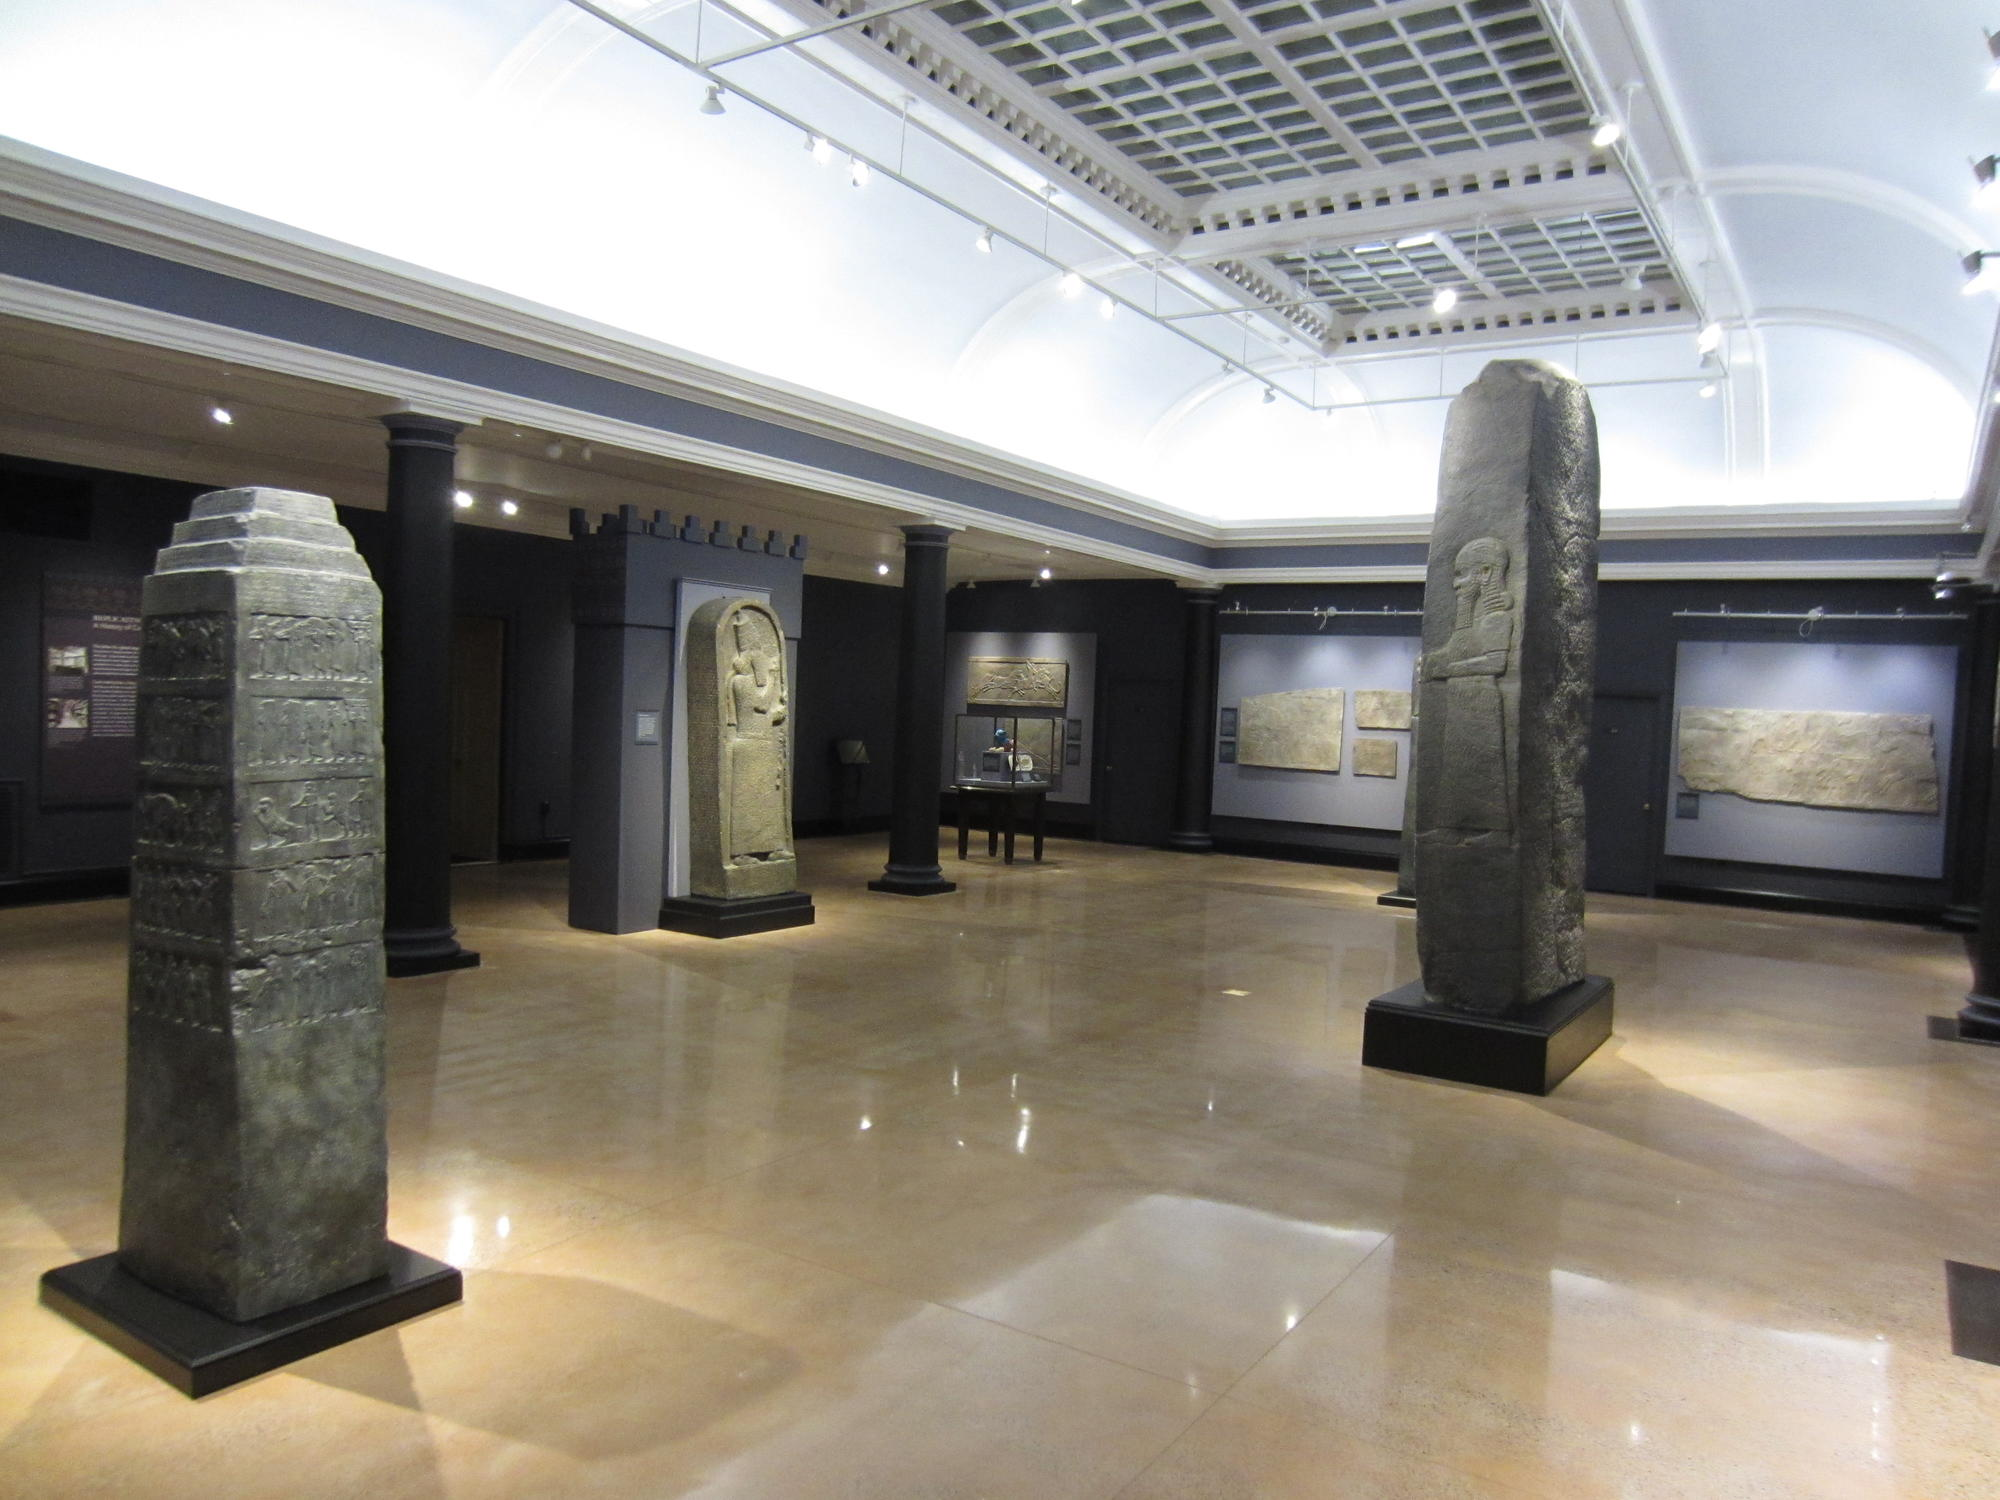 A large room filled with large plaster casts.